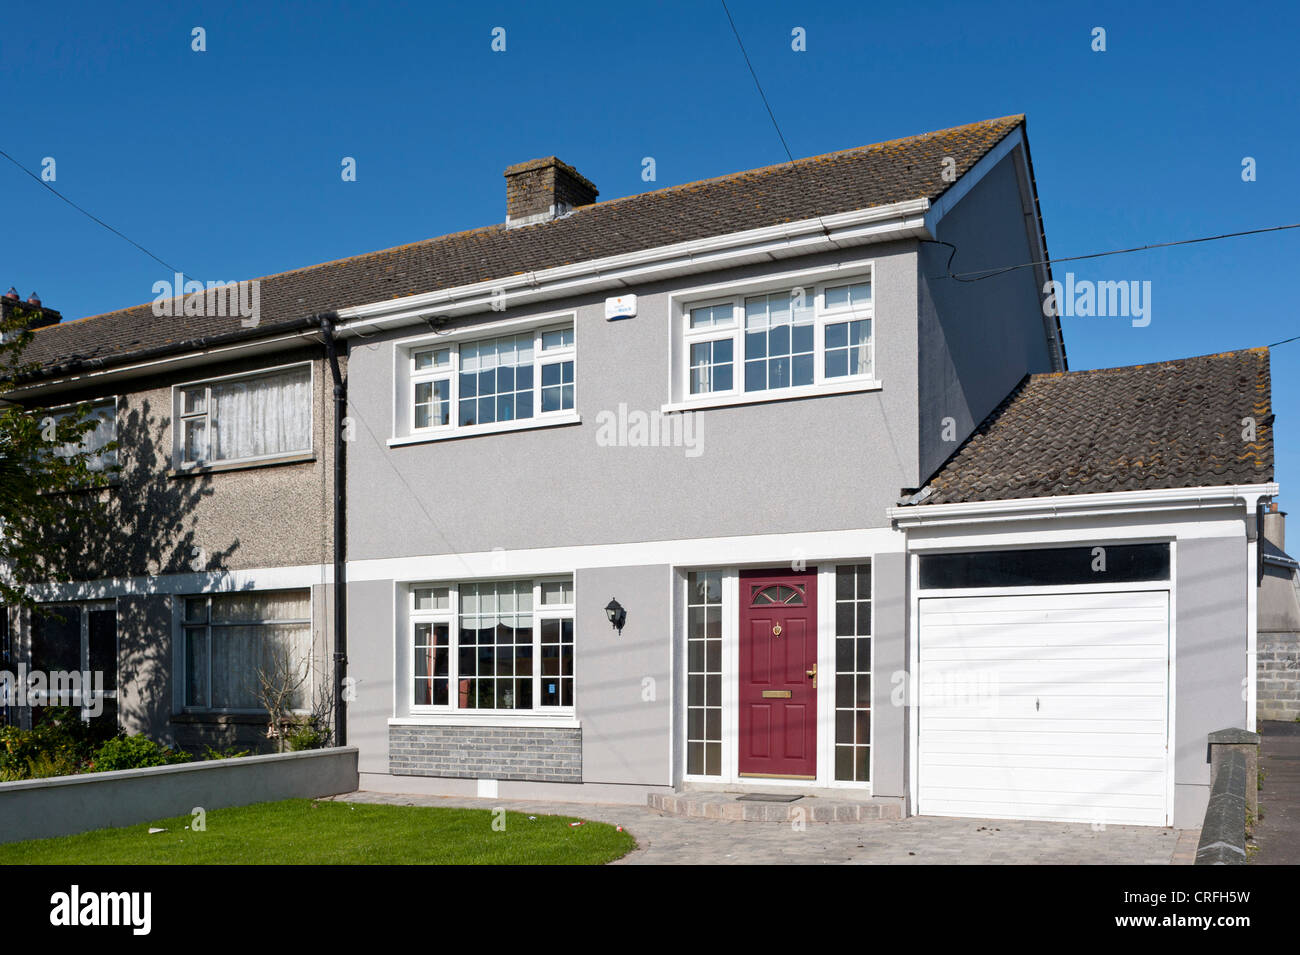 House - Stock Image